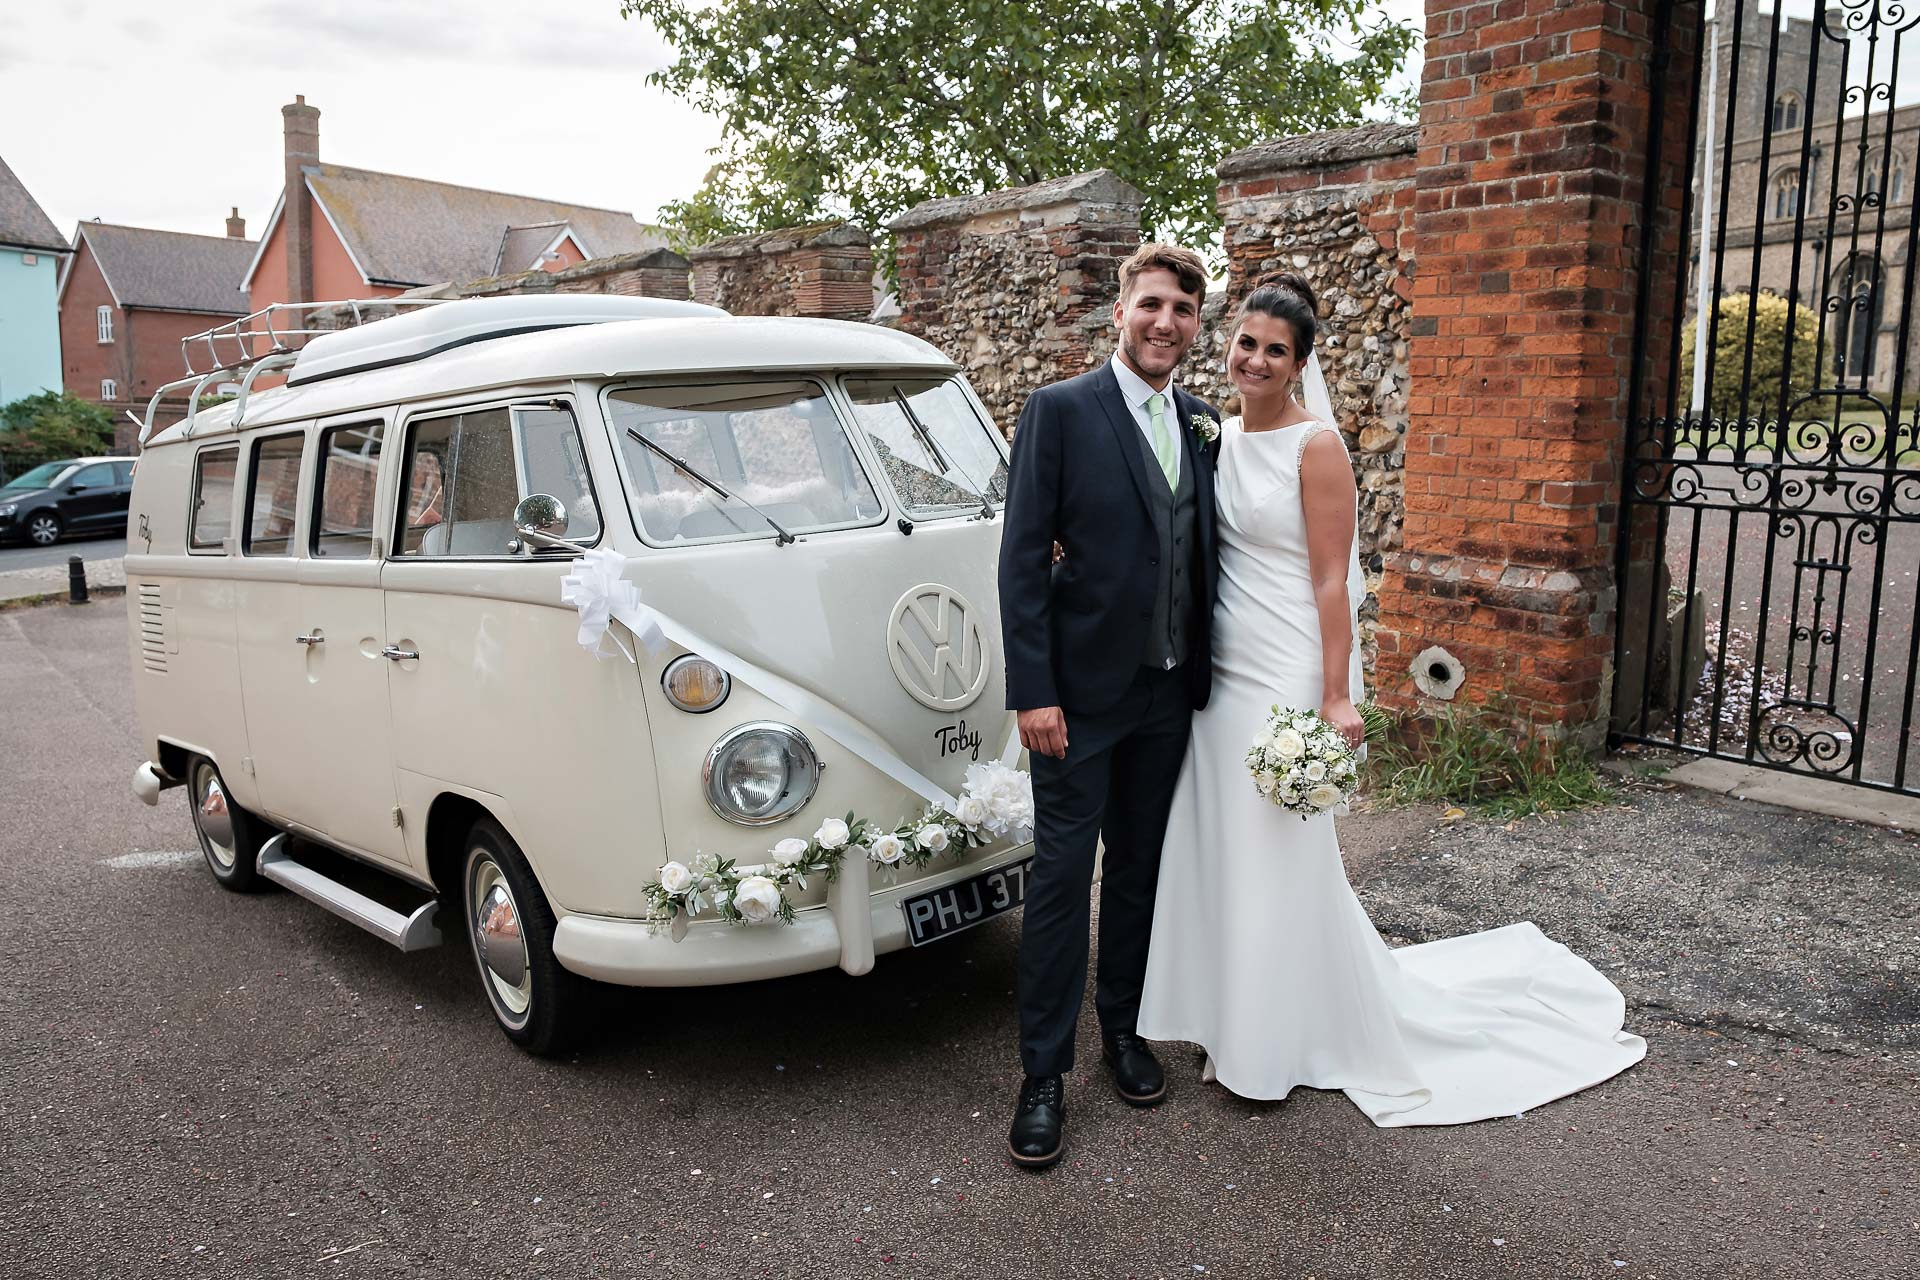 bride and groom standing in front of a VW camper van used as a wedding car